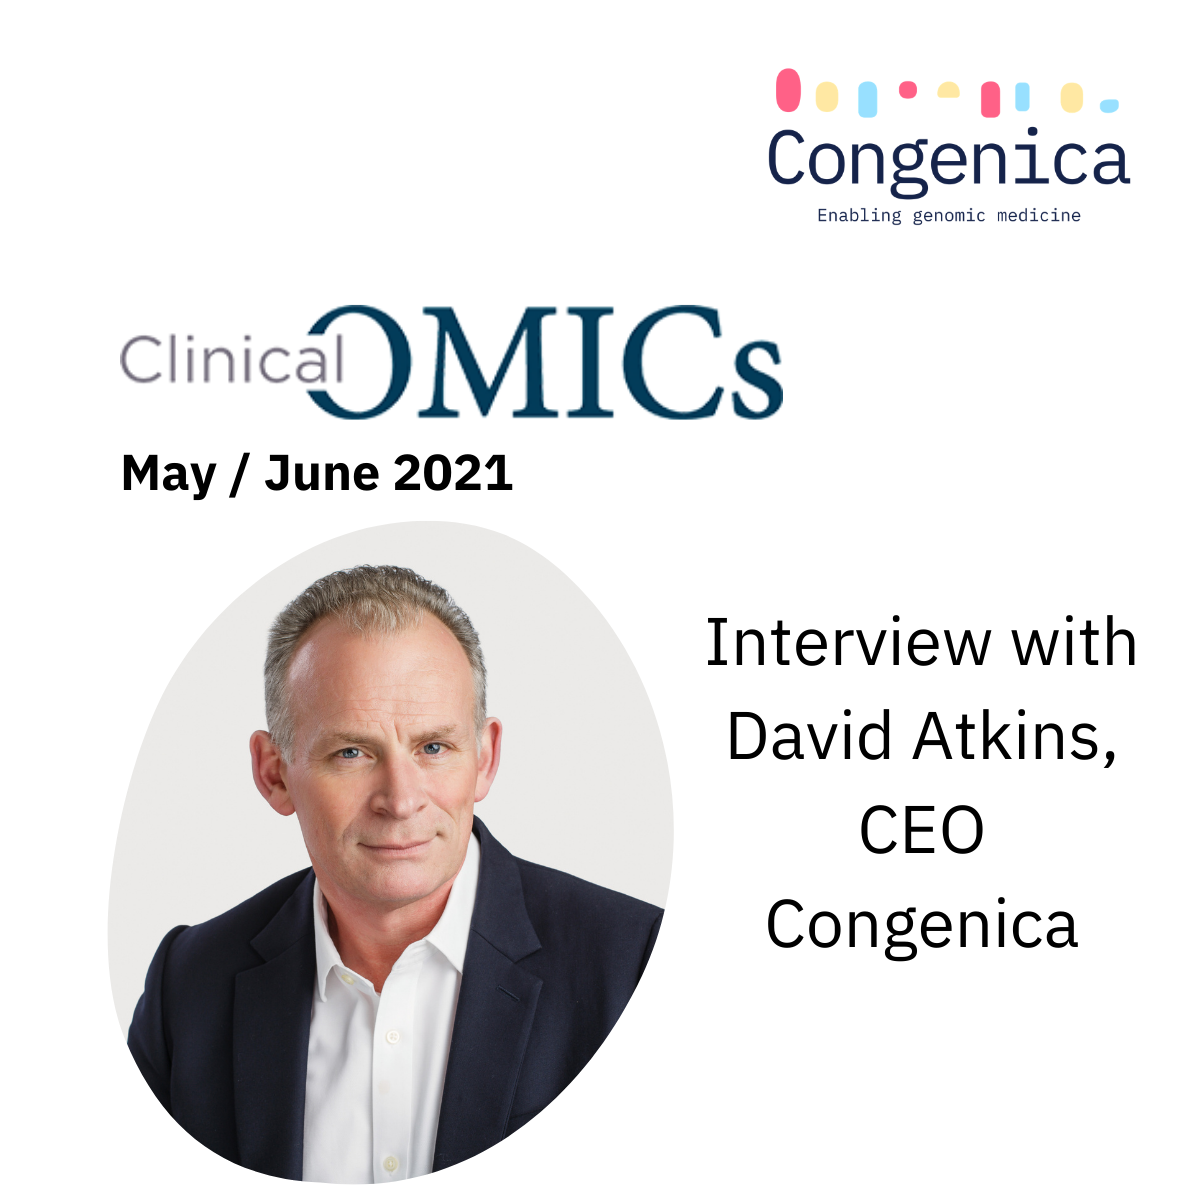 CEO David Atkins is inteviewed for Clinical OMICs